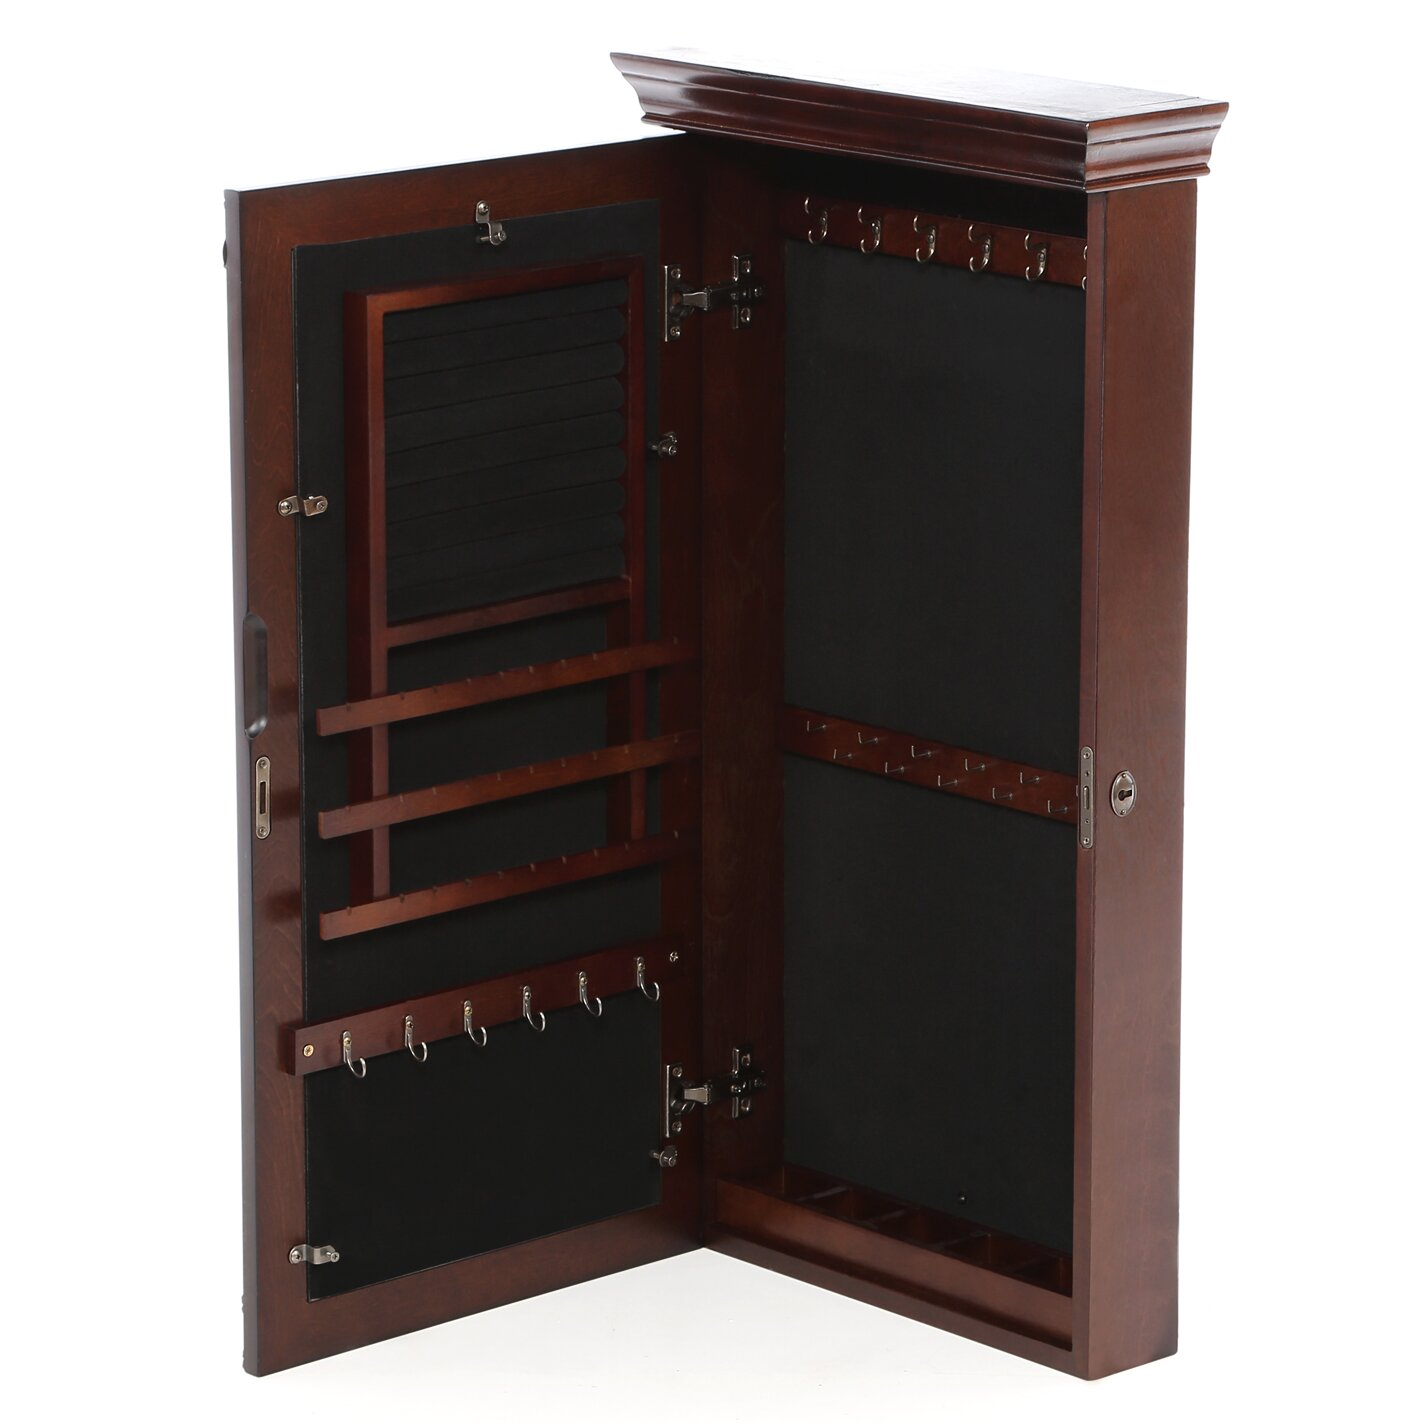 rosalind wheeler cheetham wall mount jewelry armoire with mirror reviews wayfair. Black Bedroom Furniture Sets. Home Design Ideas